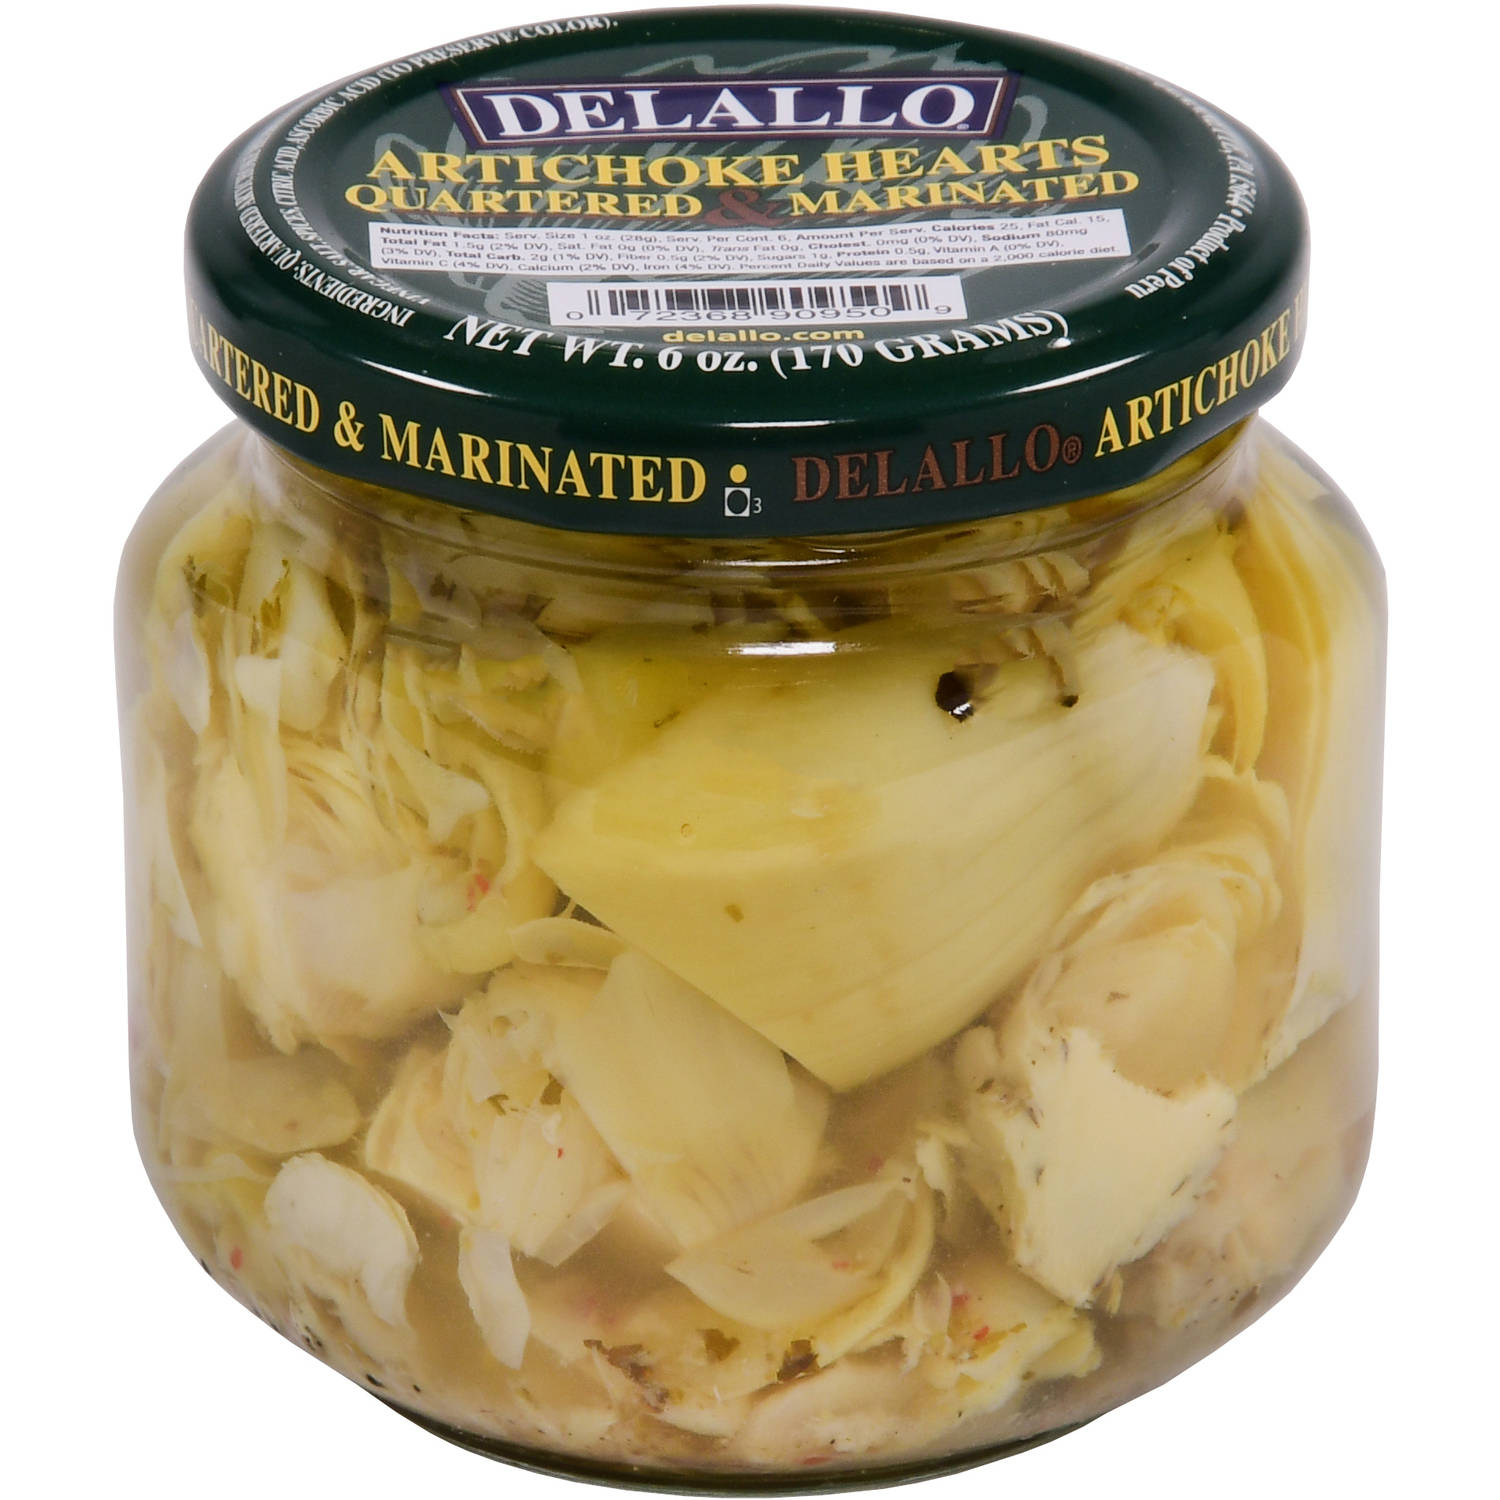 Delallo Quartered & Marinated Artichoke Hearts, 6 oz by George Delallo Co